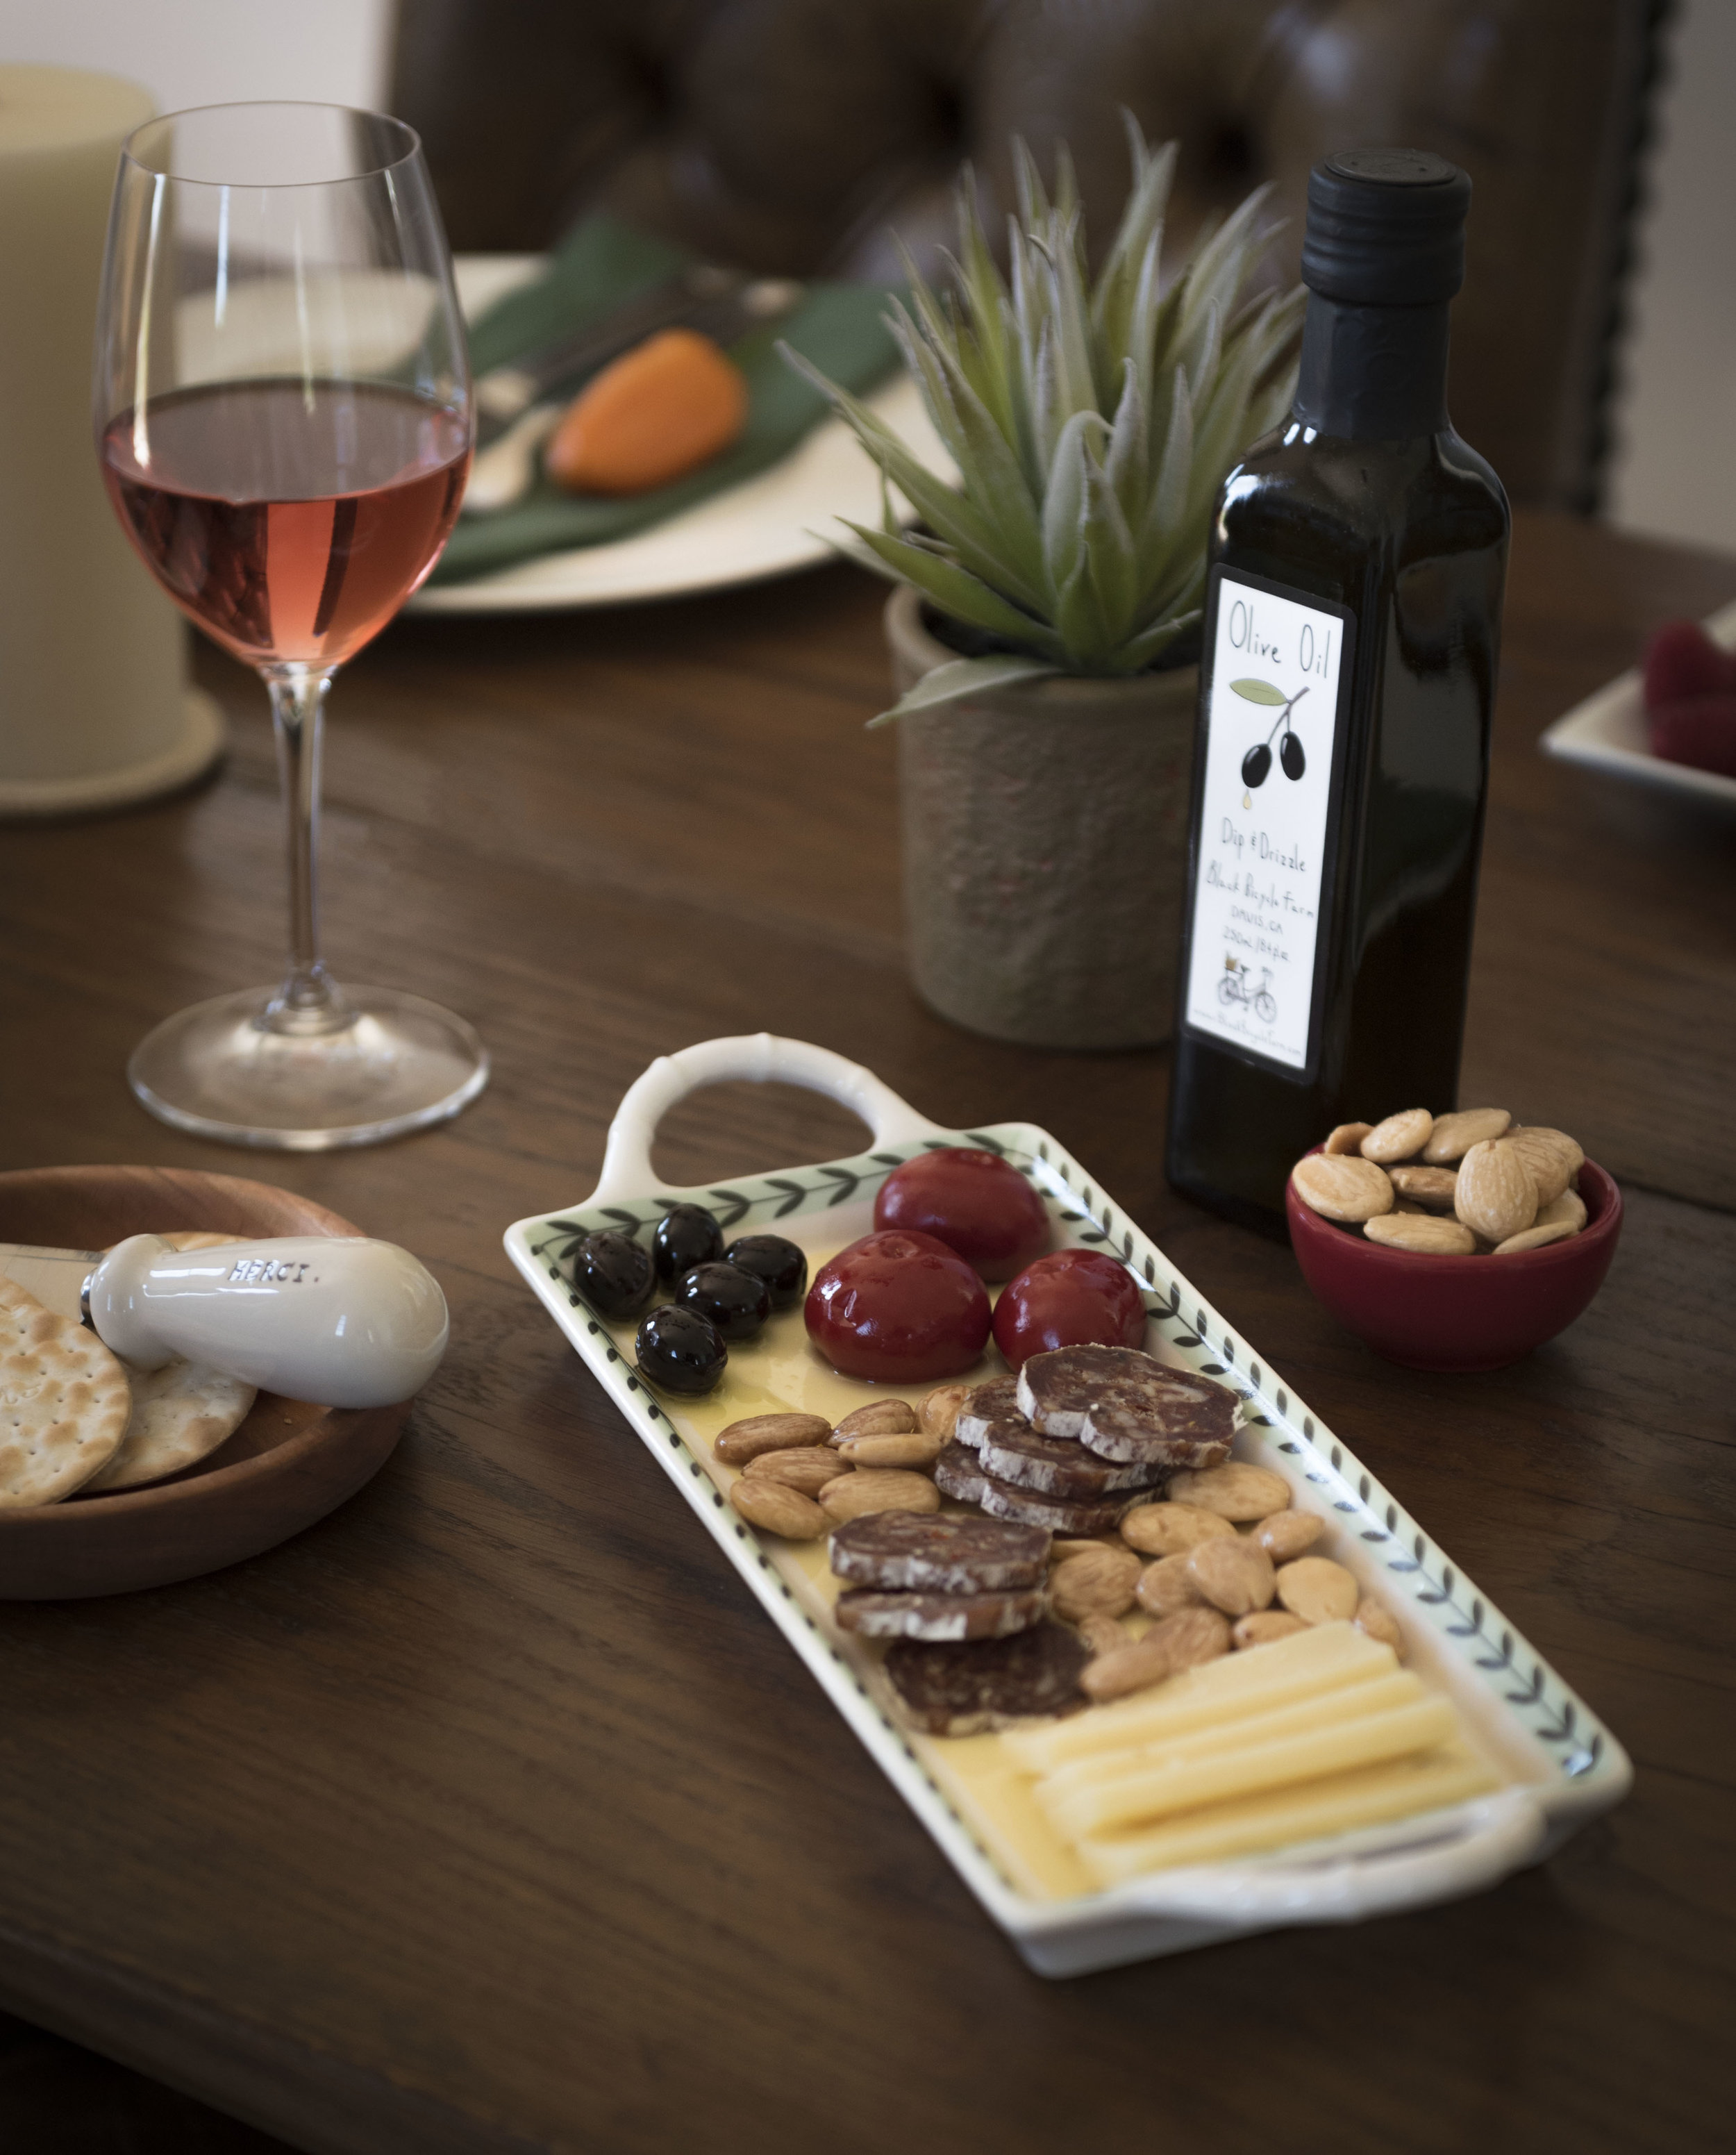 Cheese plate, olive oil, and glass of rosé on a wooden table